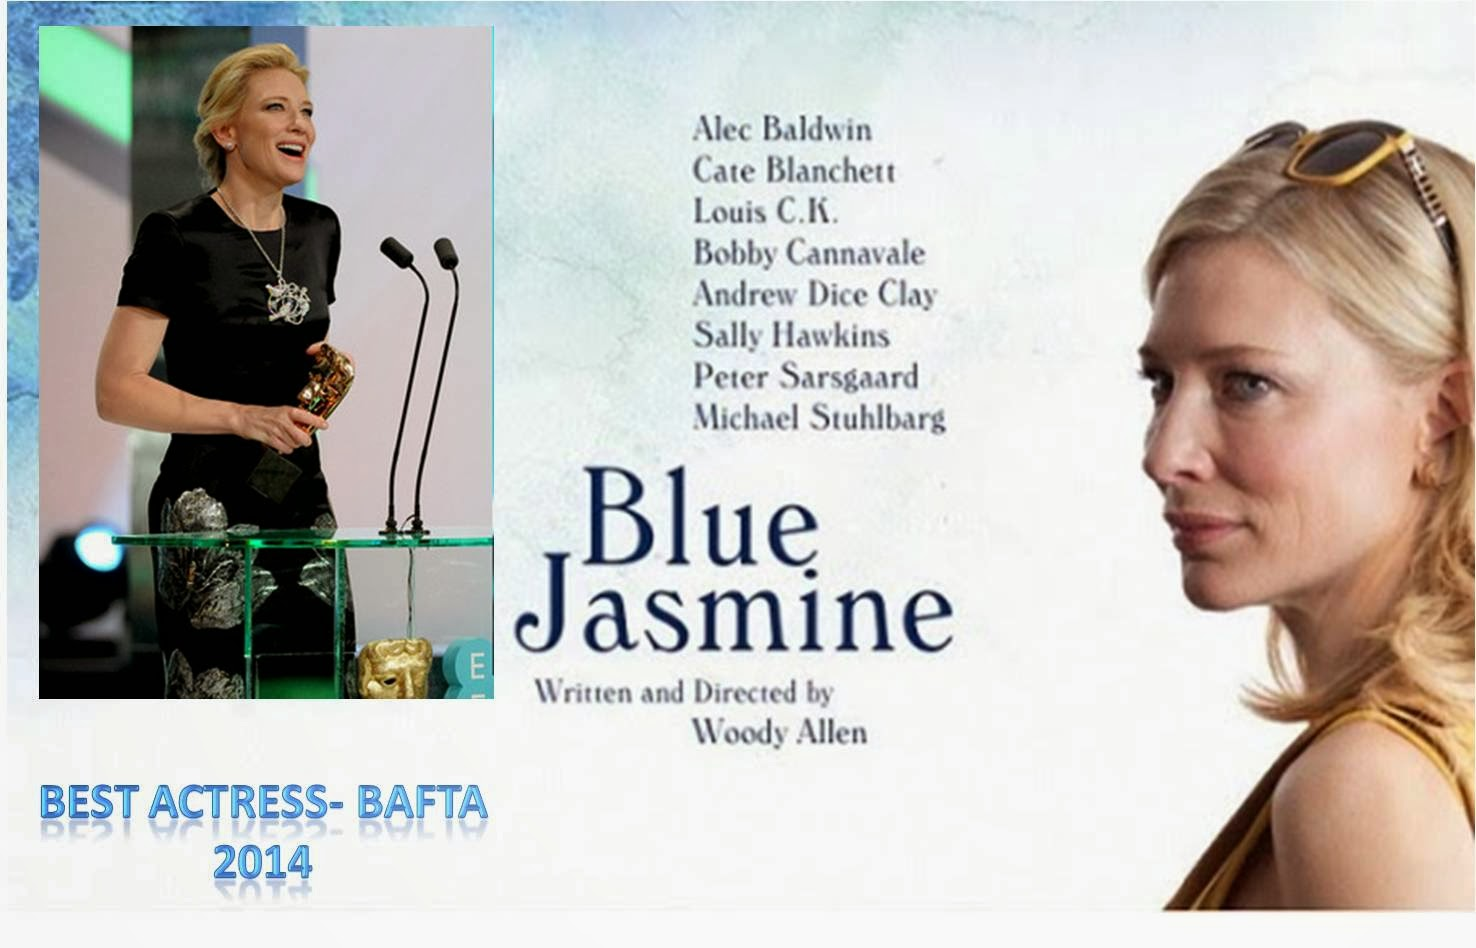 Best Actress BAFTA 2014- Cate Blanchett for Blue jasmine